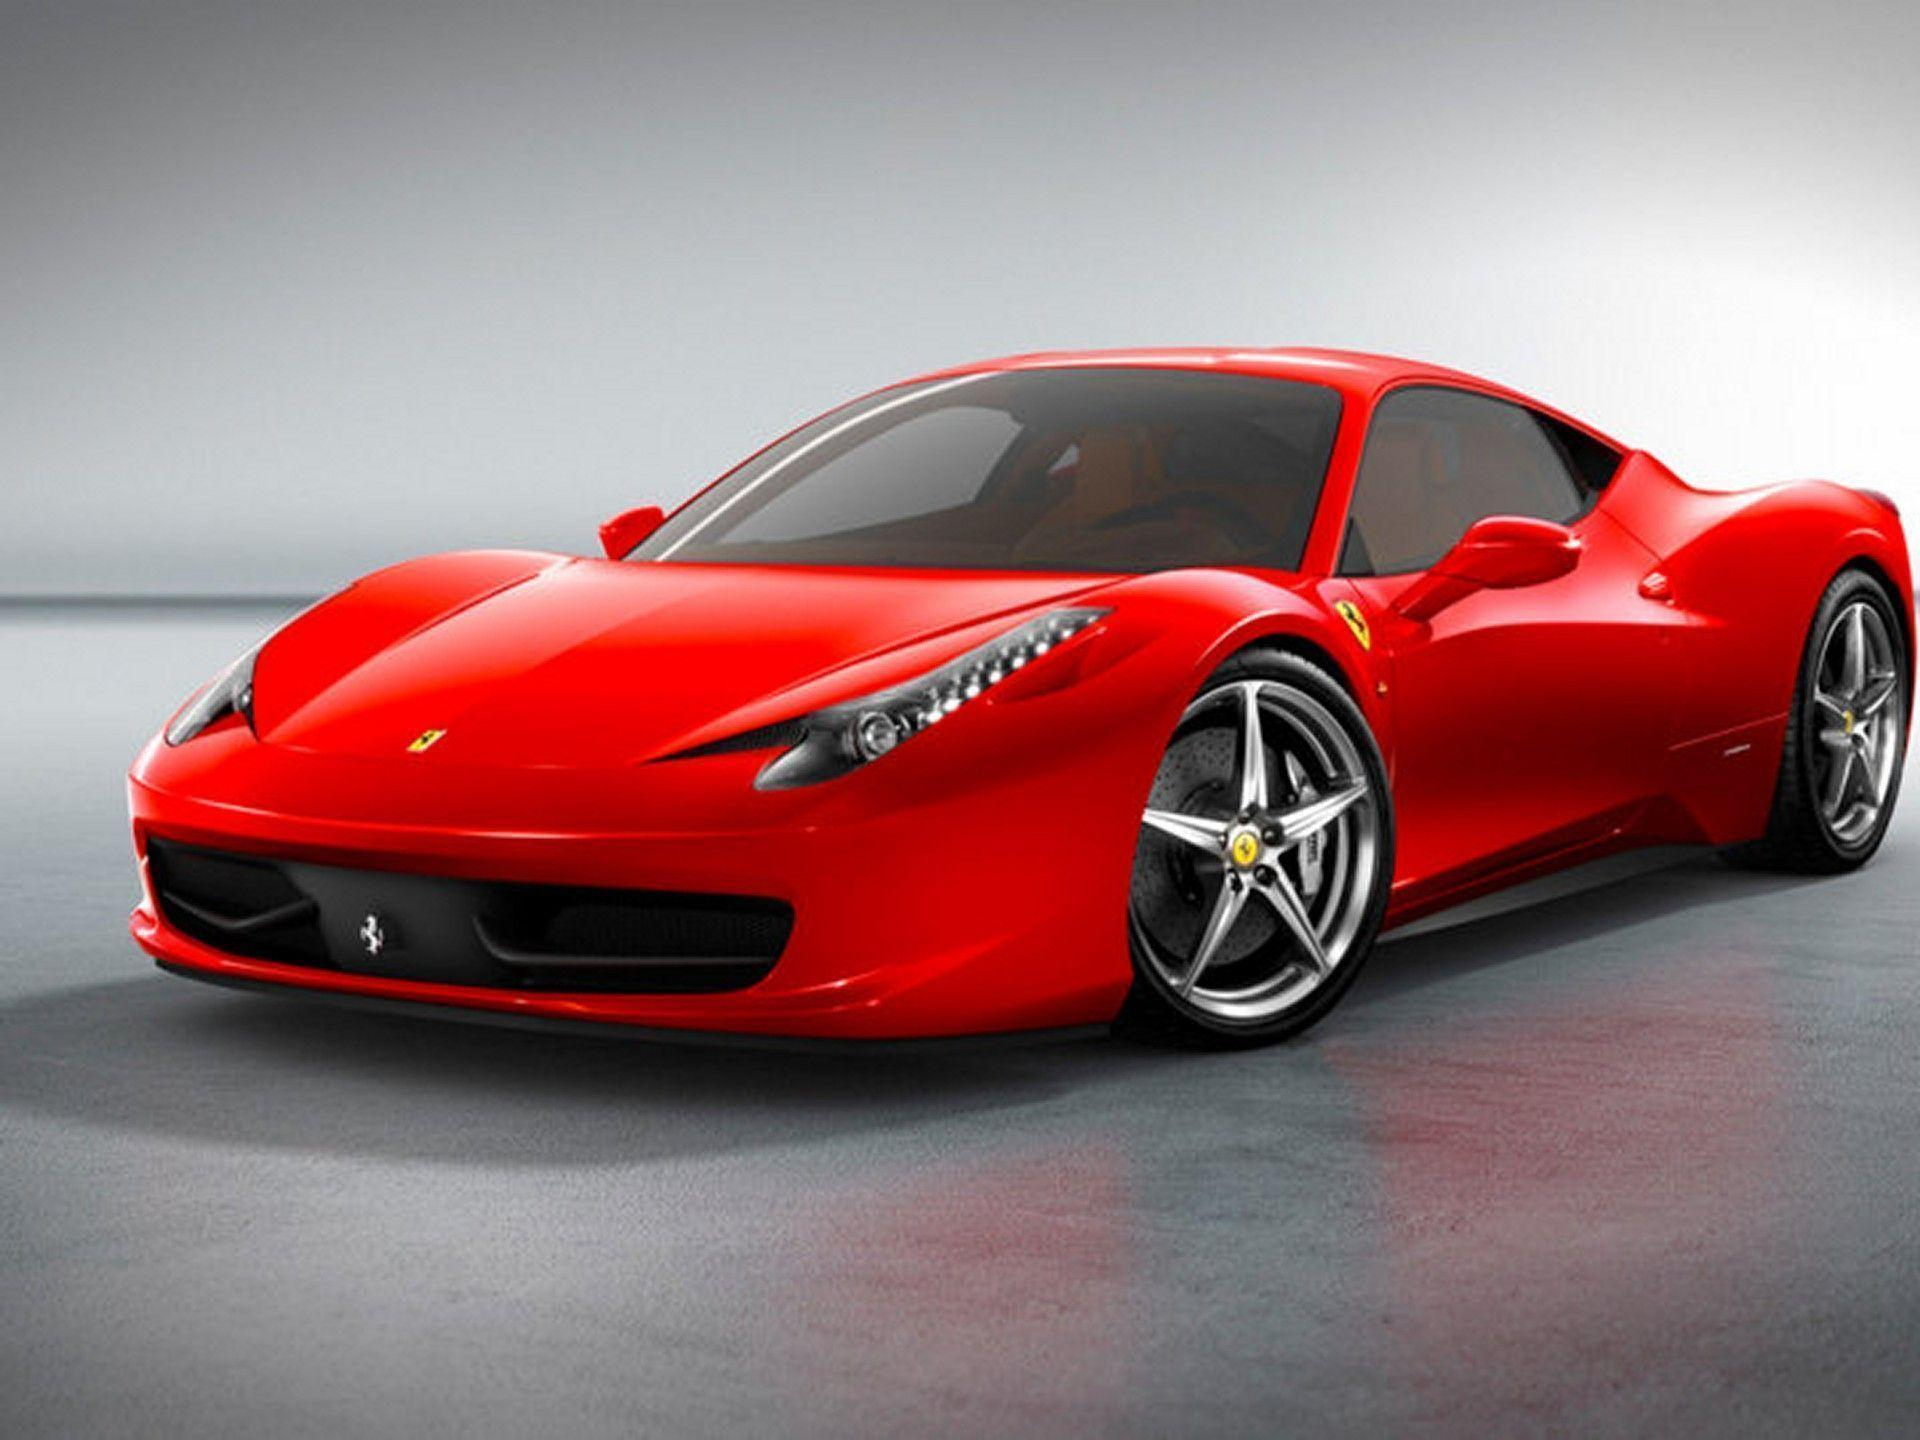 Ferrari Enzo 2015 Wallpapers - Wallpaper Cave